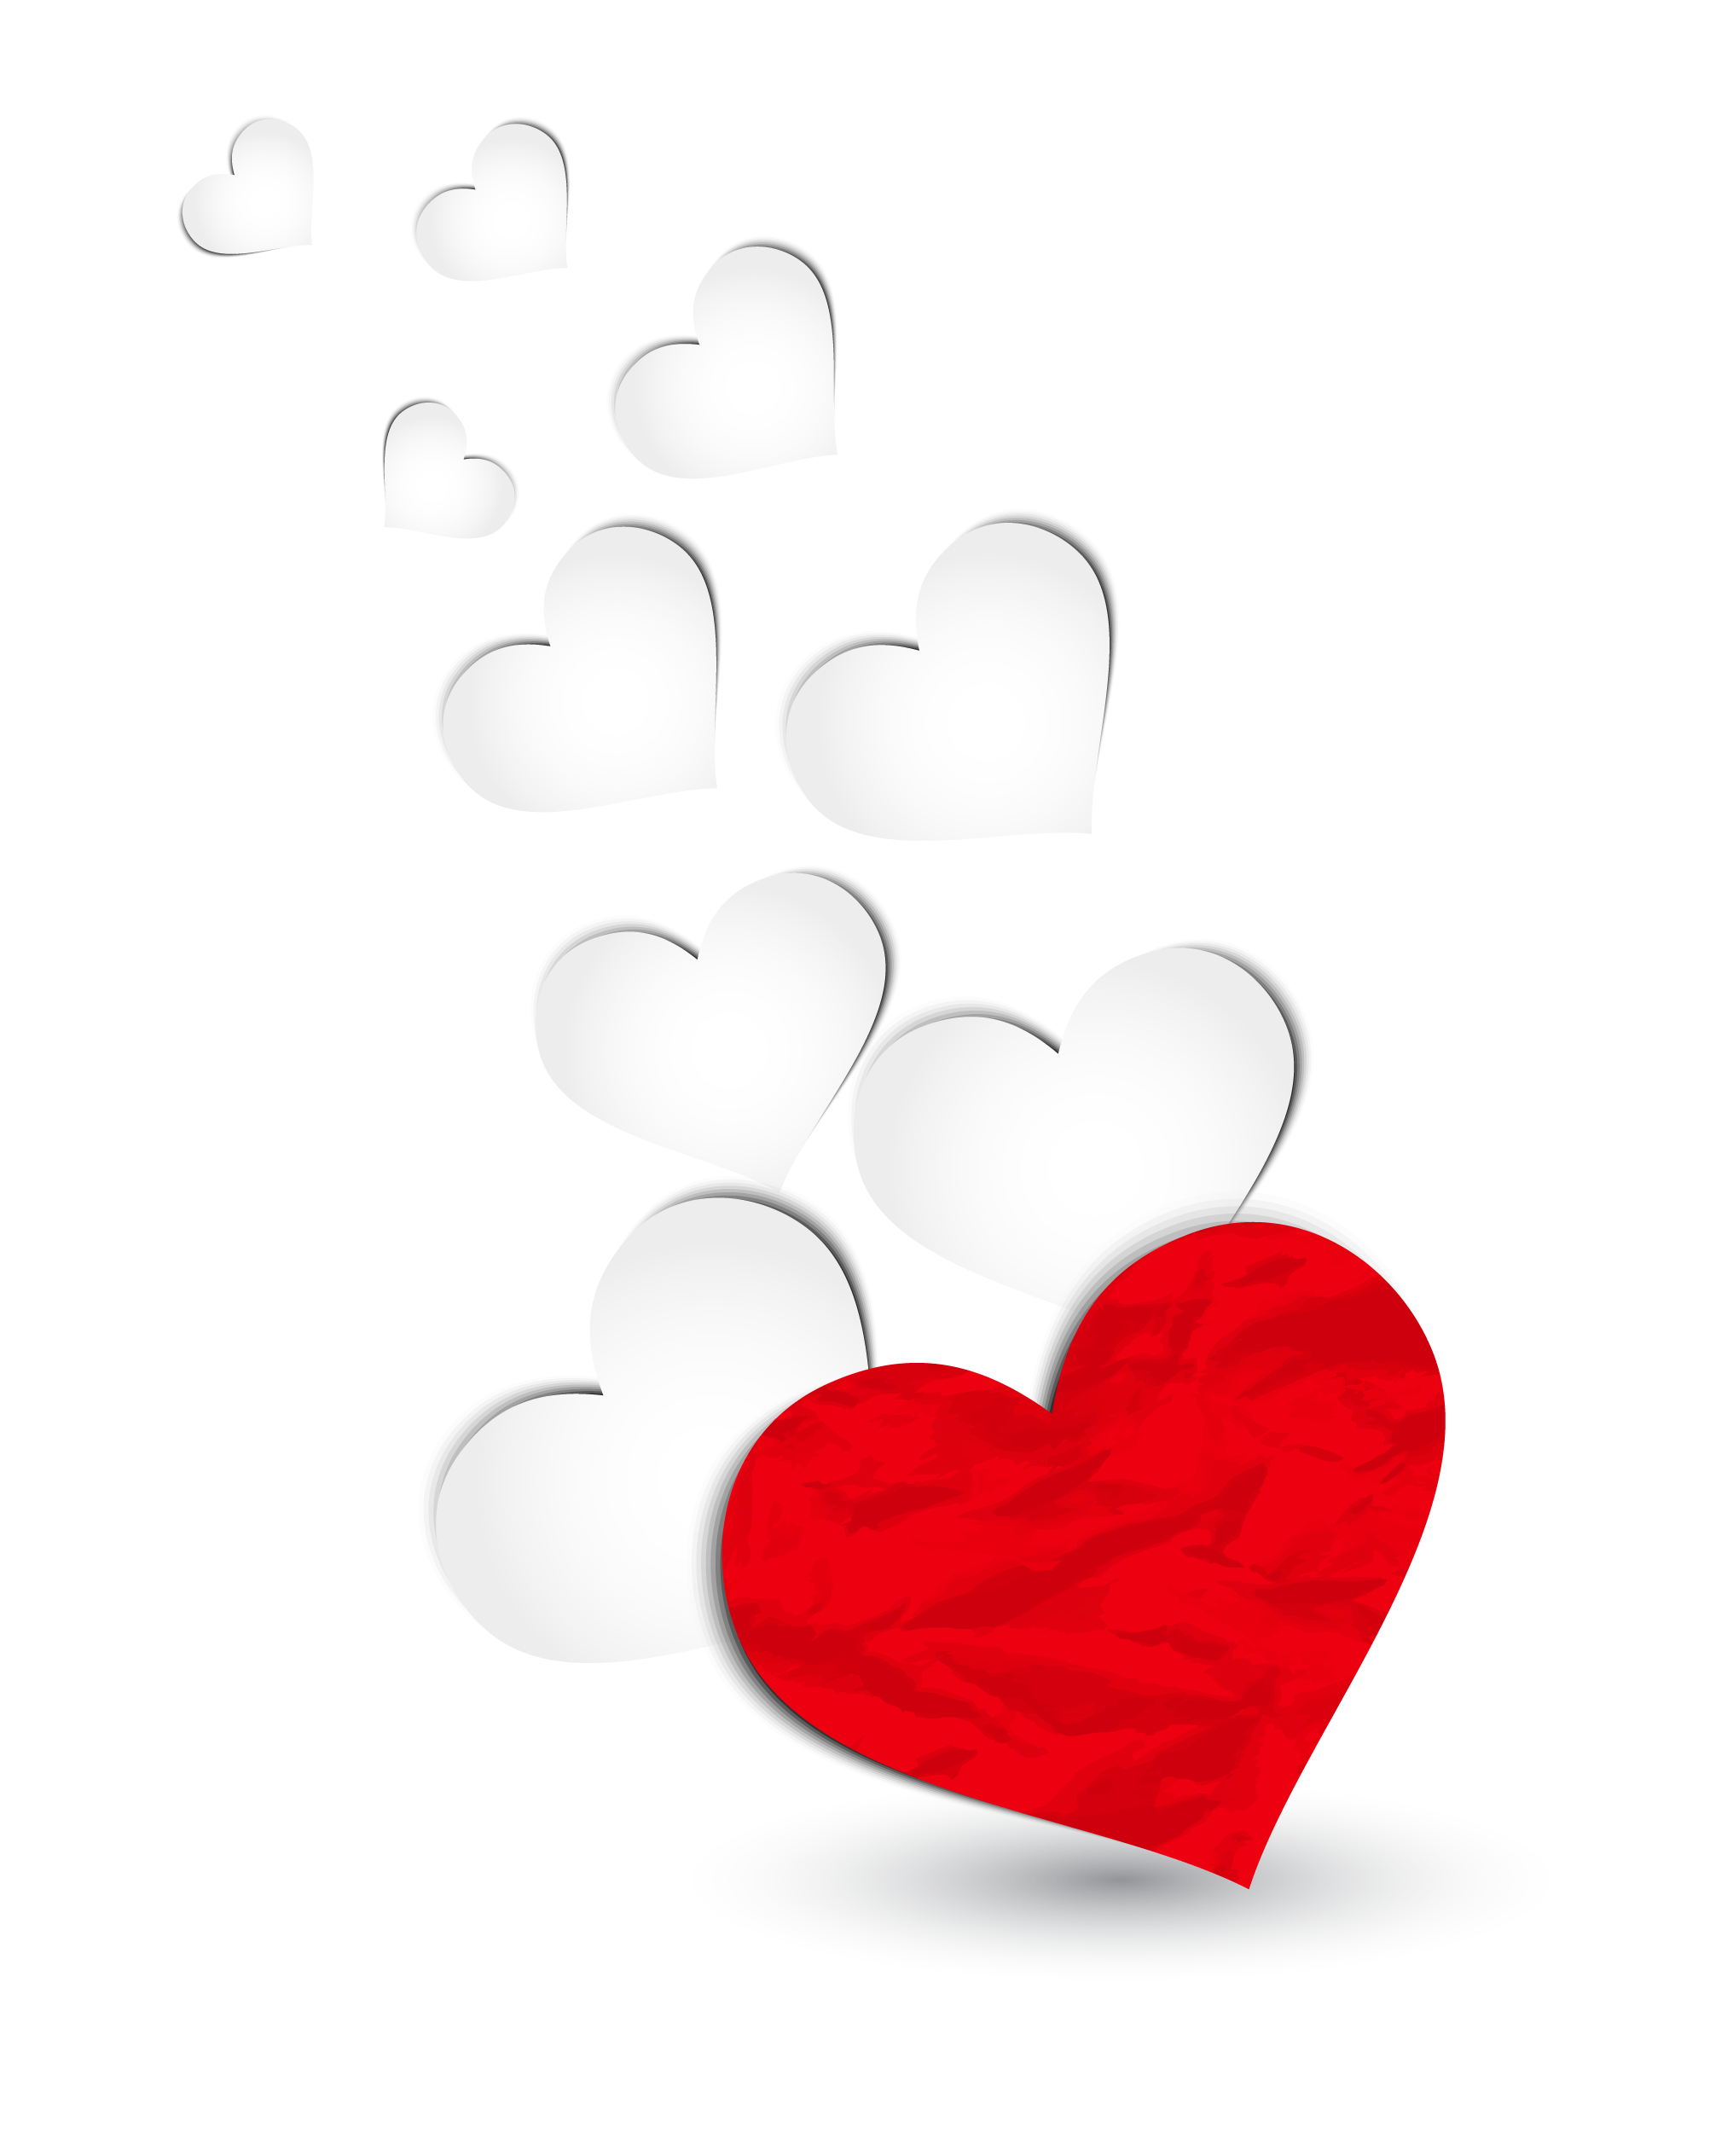 White heart clipart png. Red and hearts decoration